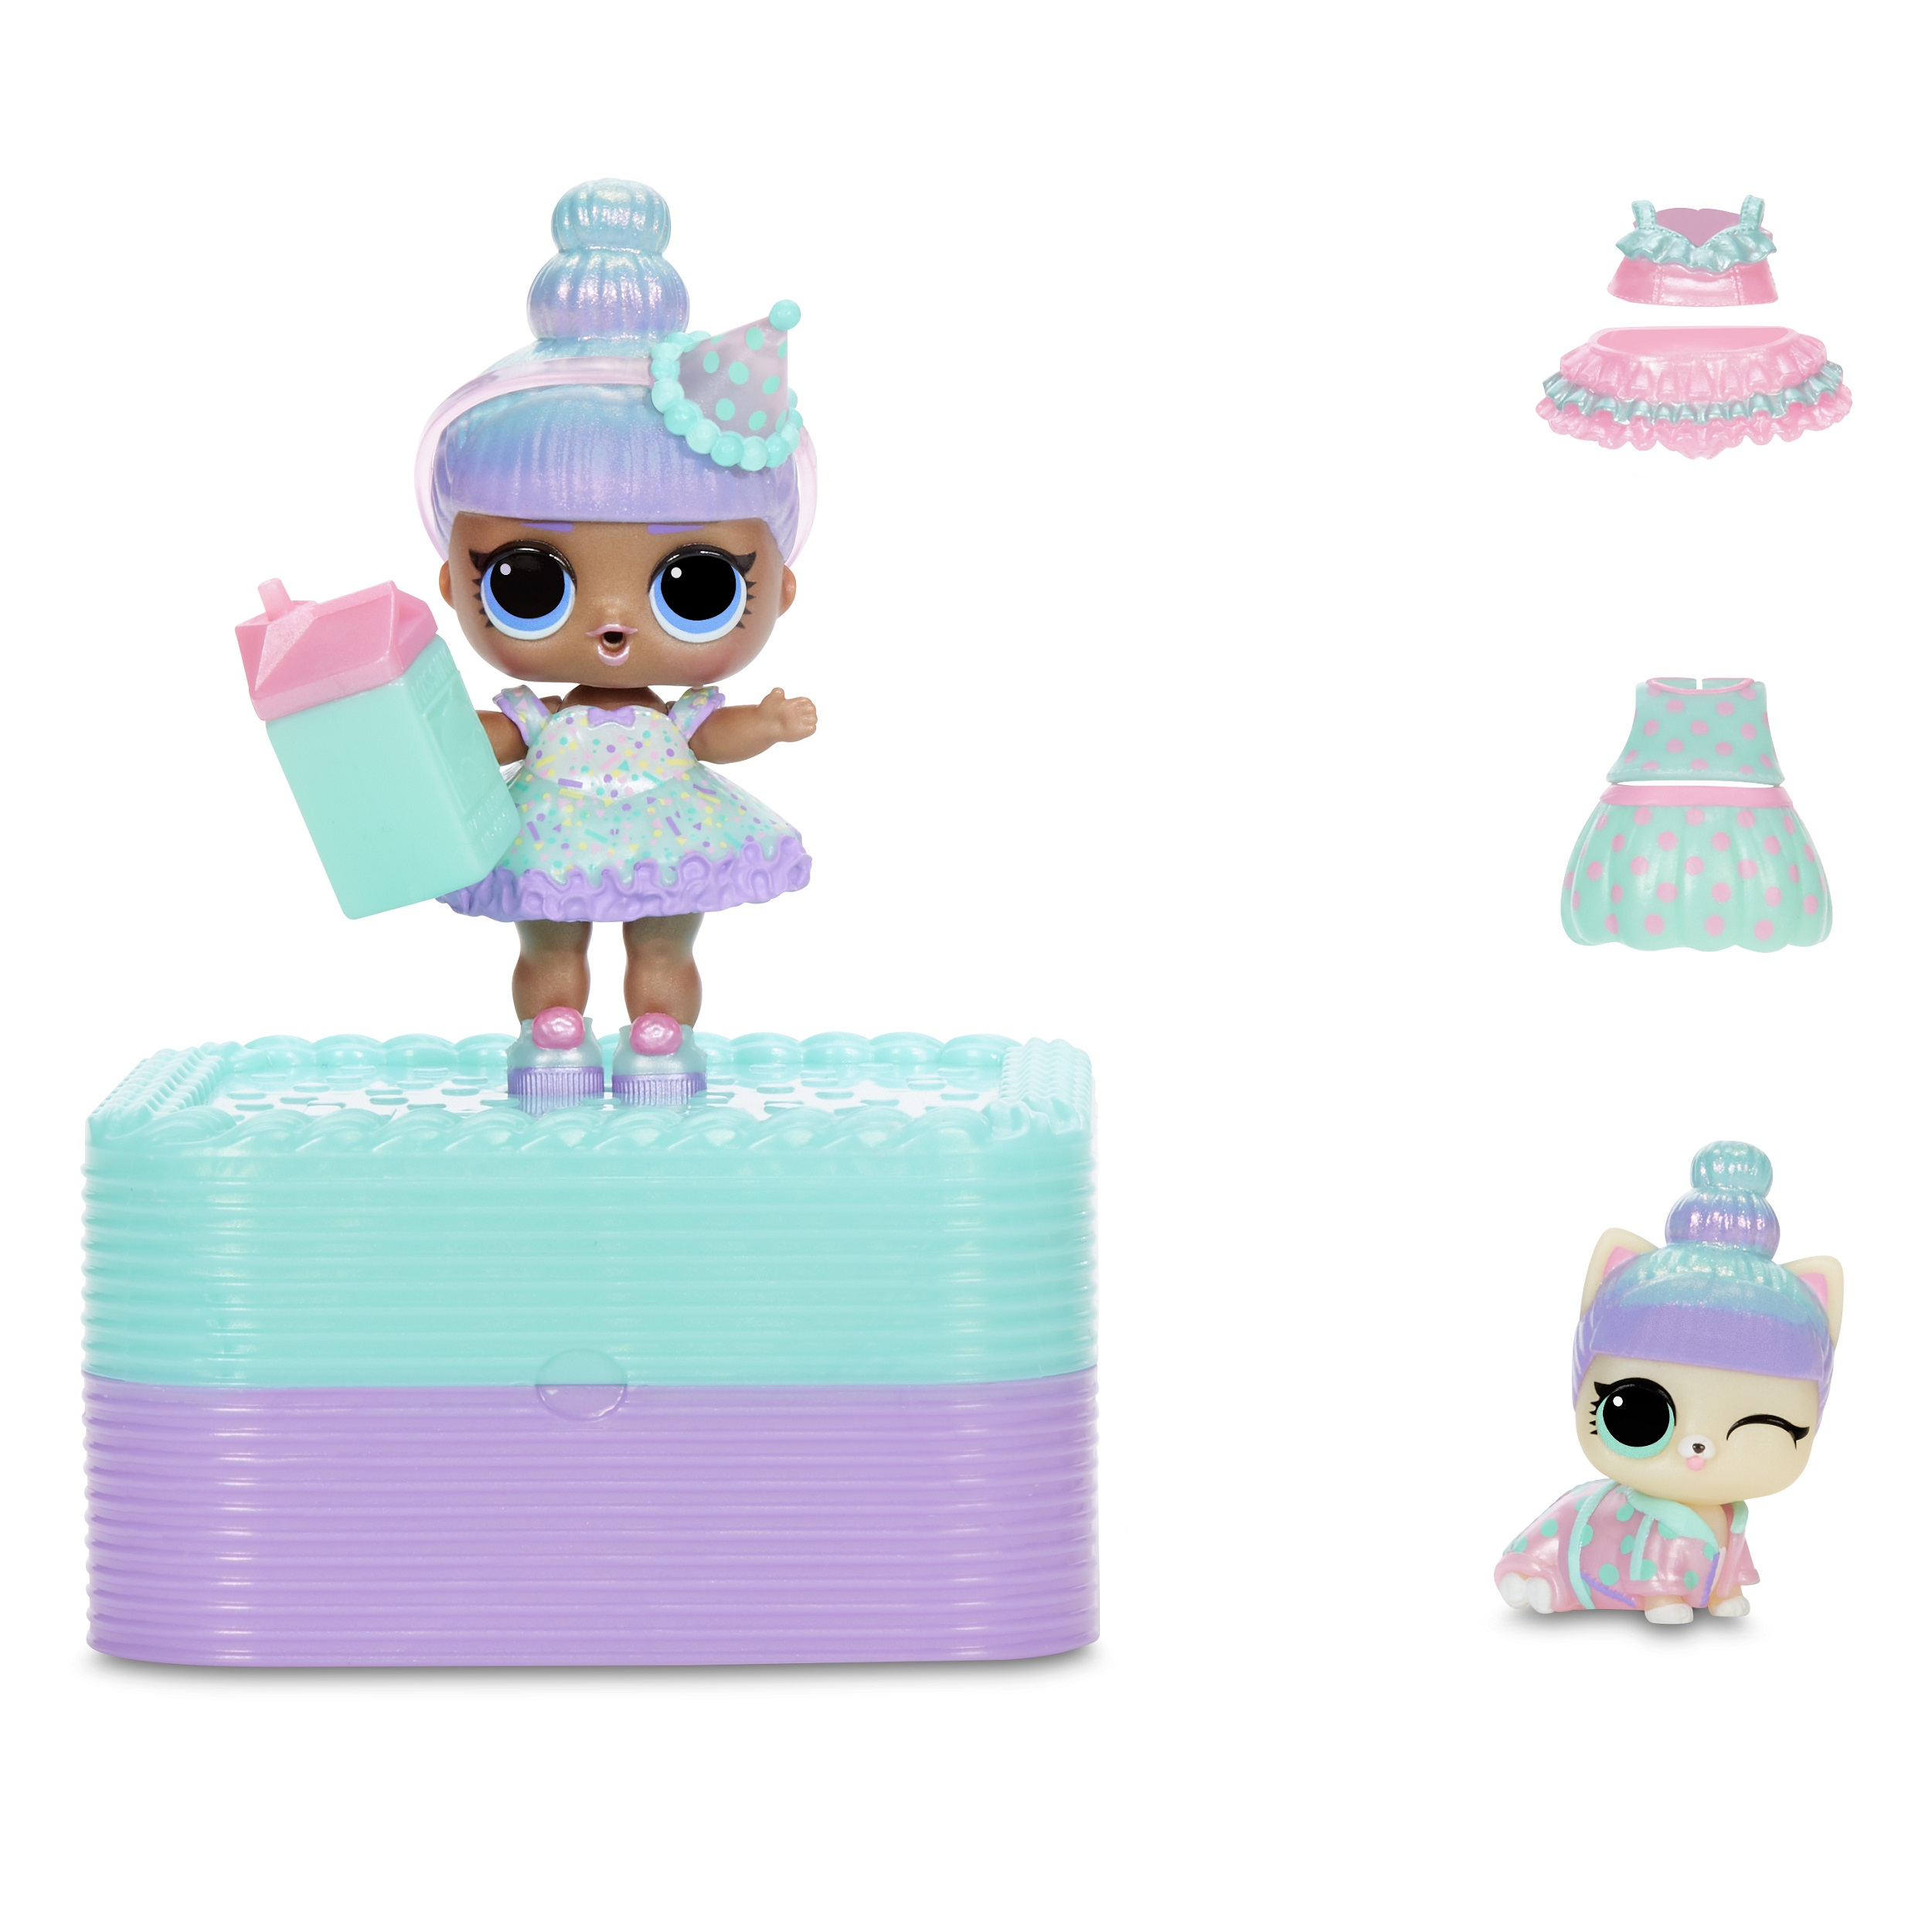 L.O.L. Surprise Deluxe Present Sprinkles Doll